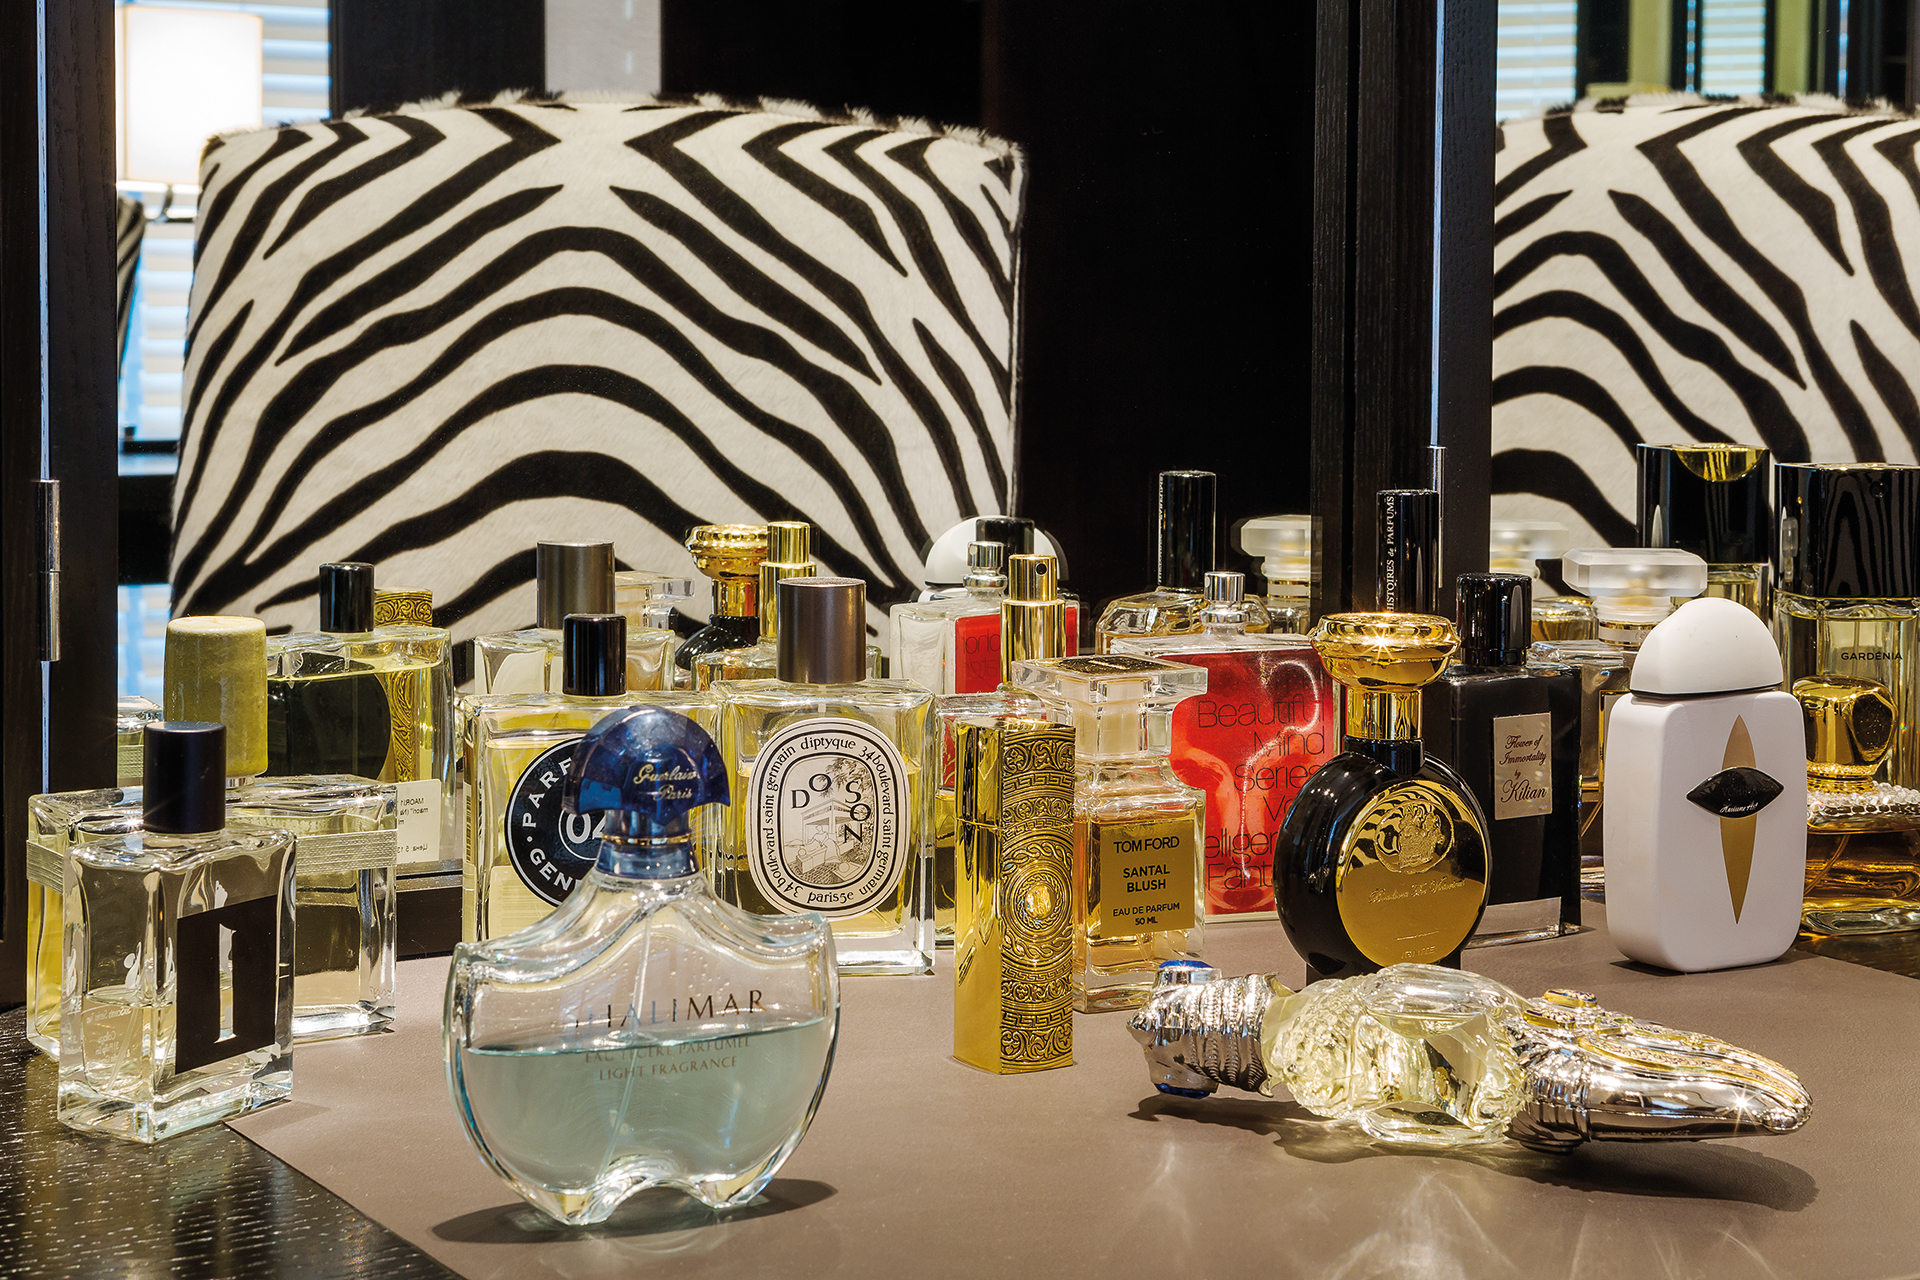 Perfumes lined up at the make-up desk